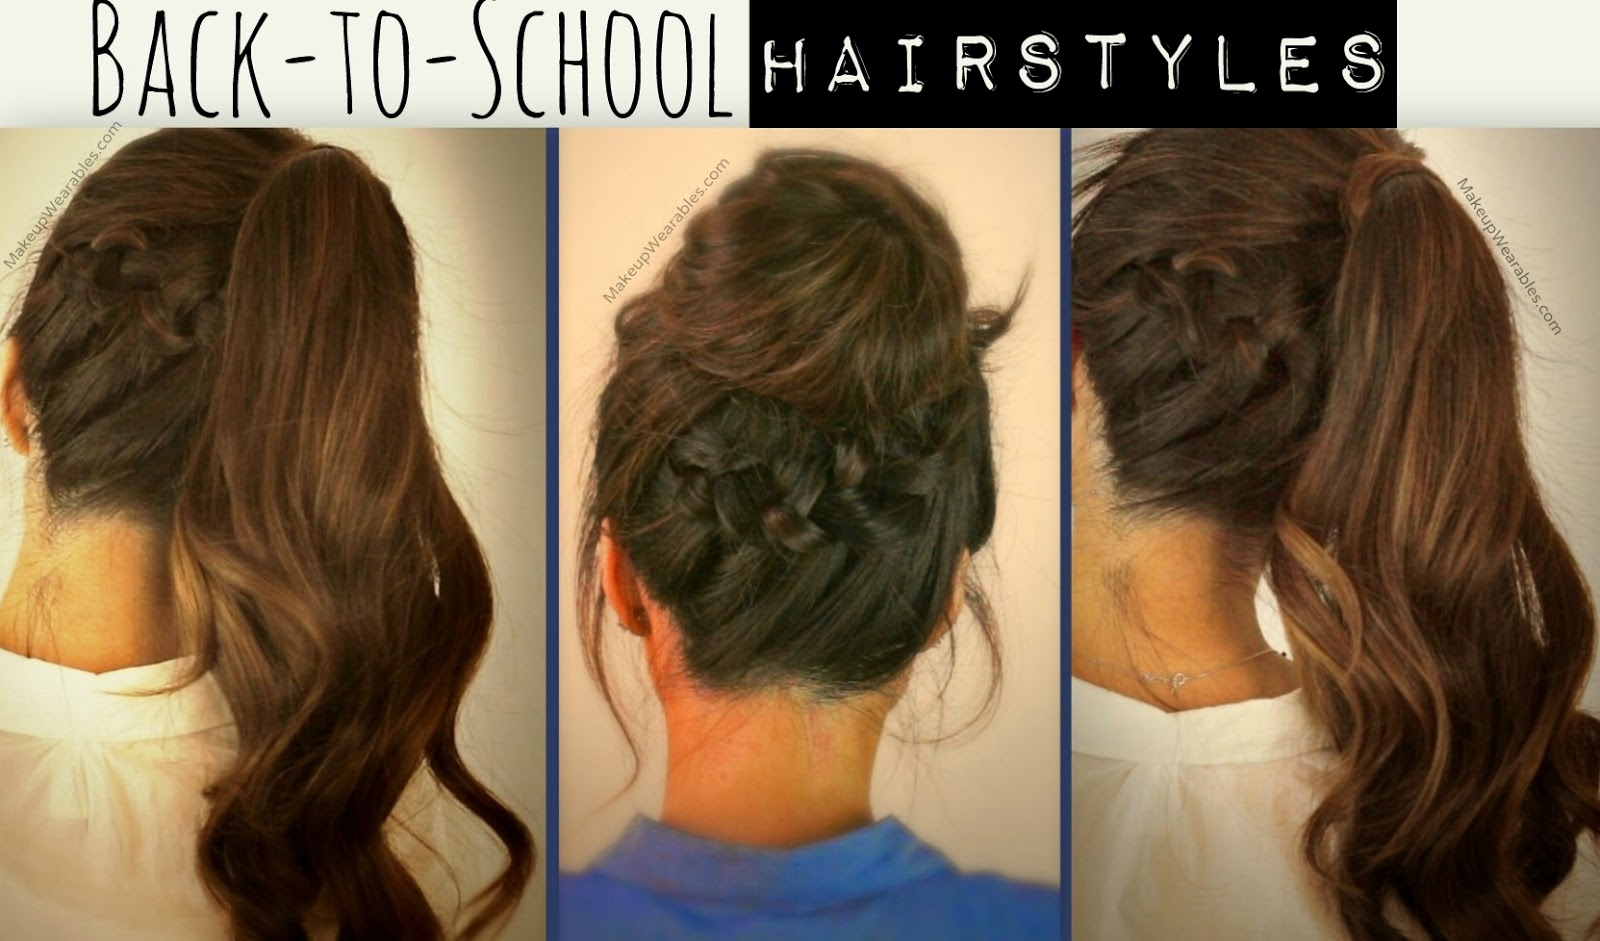 Free hair tutorial video Cute school hairstyles & updos with braids ...